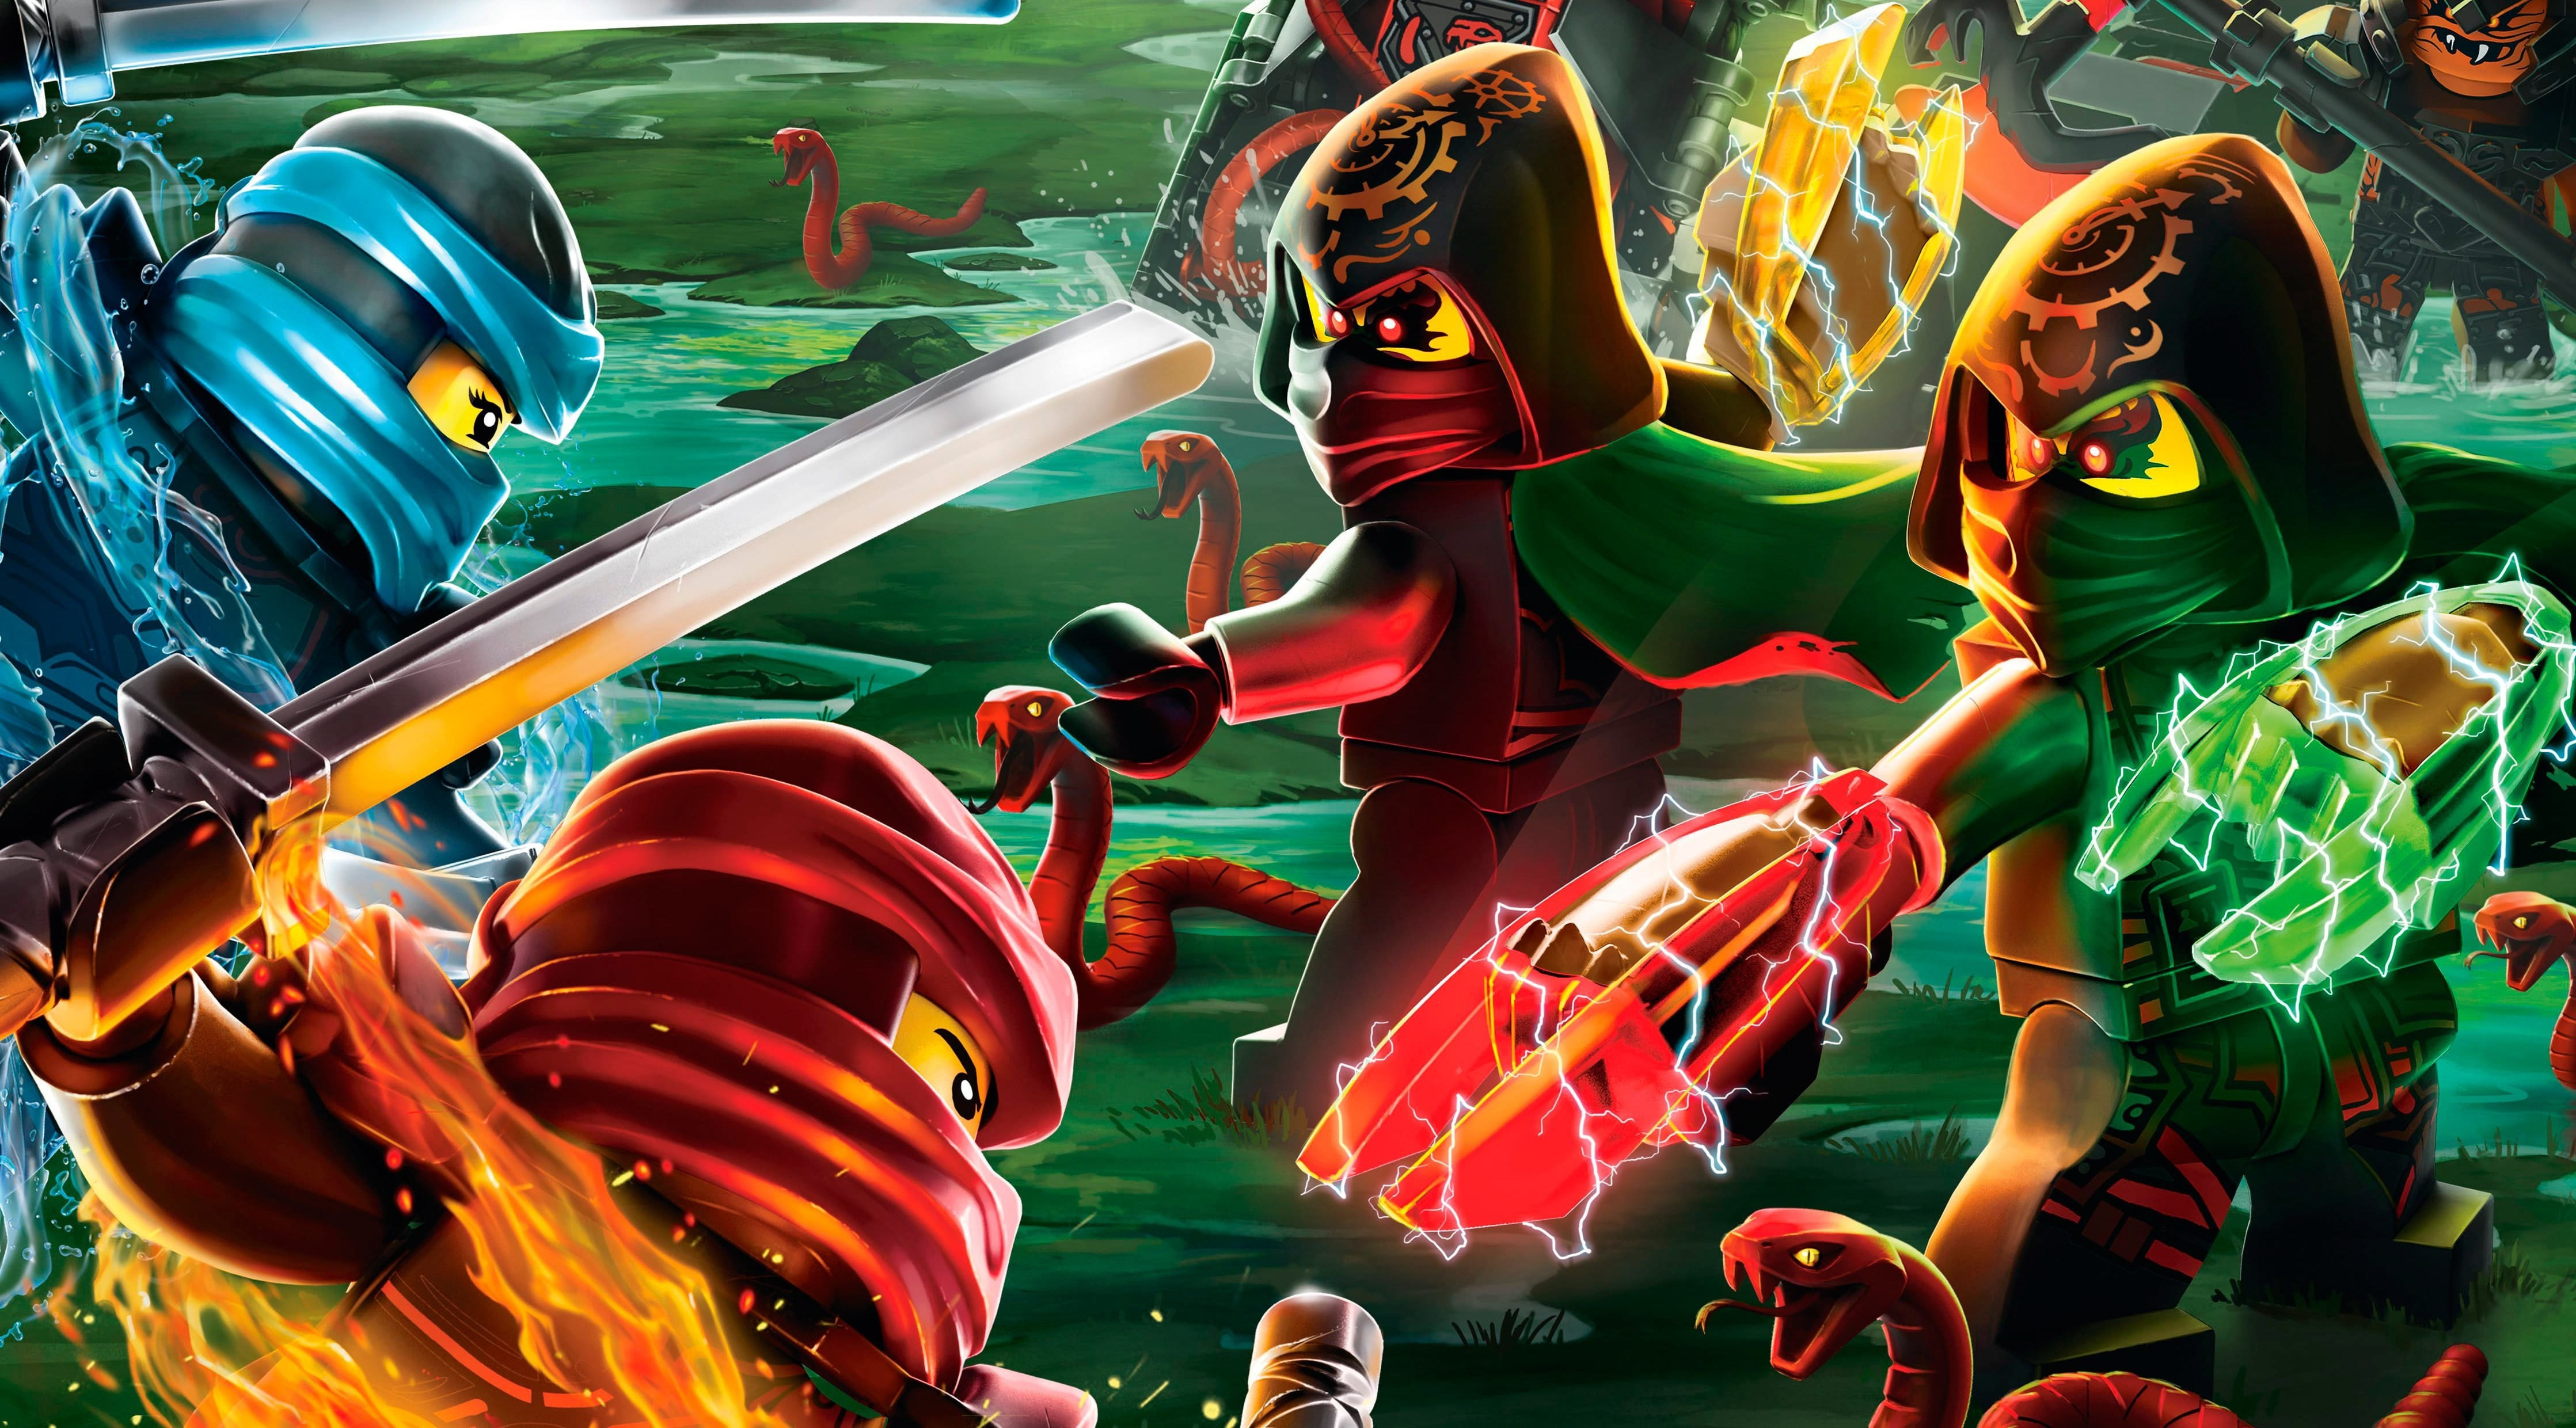 The lego ninjago movie 4k ultra hd wallpaper and background image movie the lego ninjago movie lego ninjago masters of spinjitzu lego wallpaper voltagebd Image collections